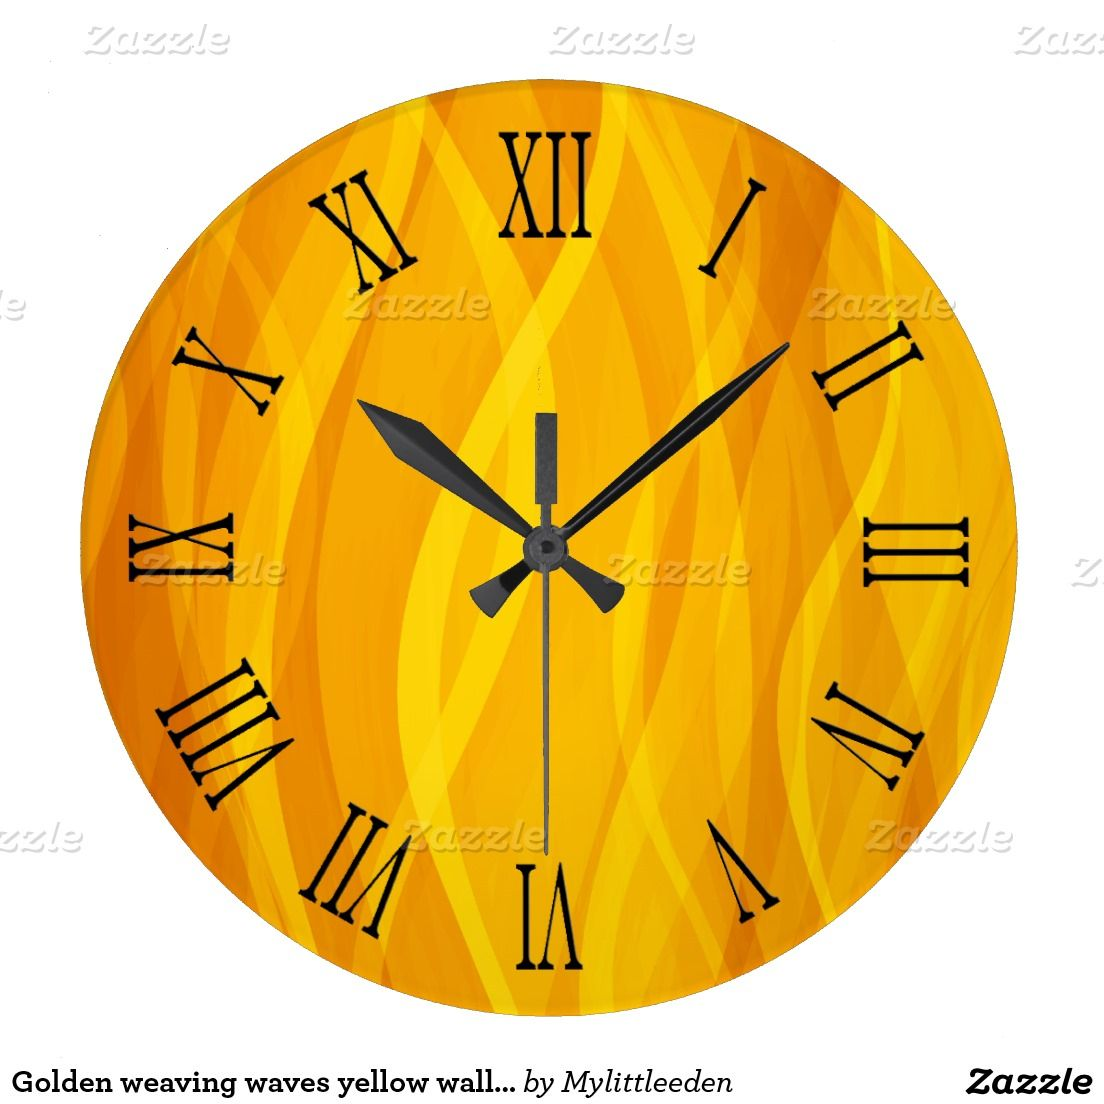 Golden weaving waves yellow wall clock | Bedroom Ideas | Pinterest ...